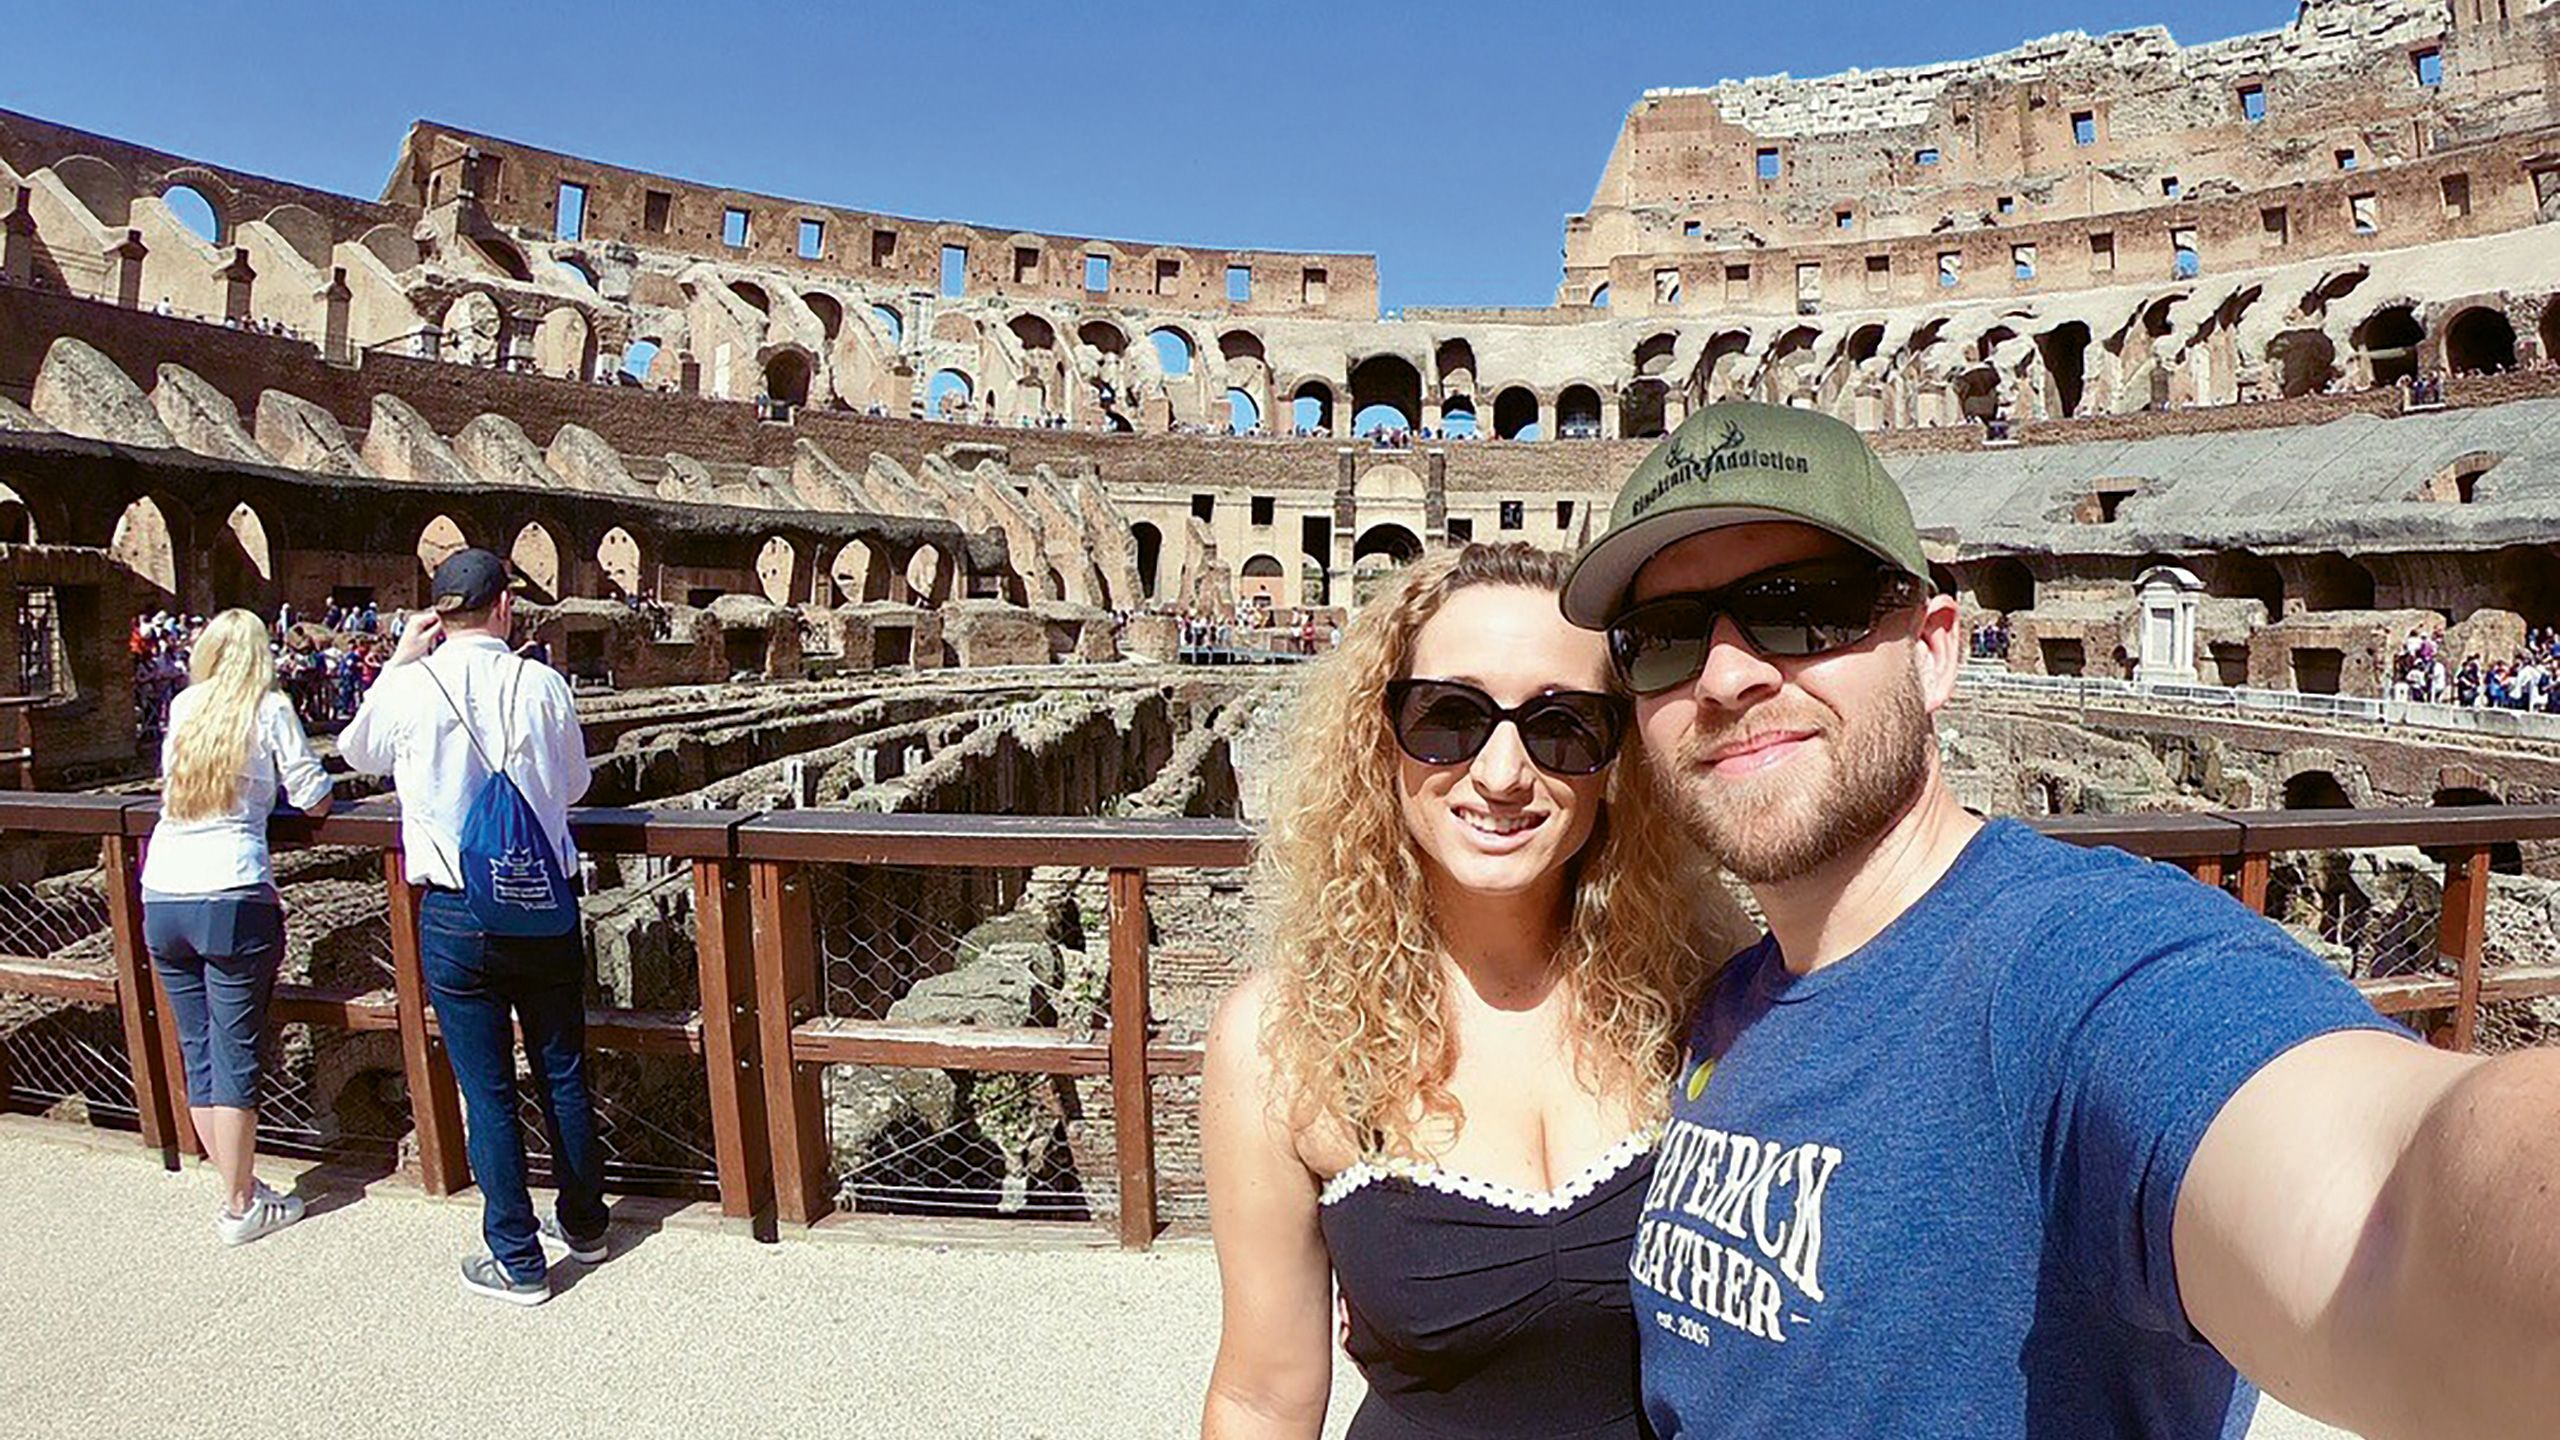 Barbara Daniels with her fiance in Italy. Daniels won a contest for heritage travel on iHeartRadio after getting her DNA analysis from 23andMe.